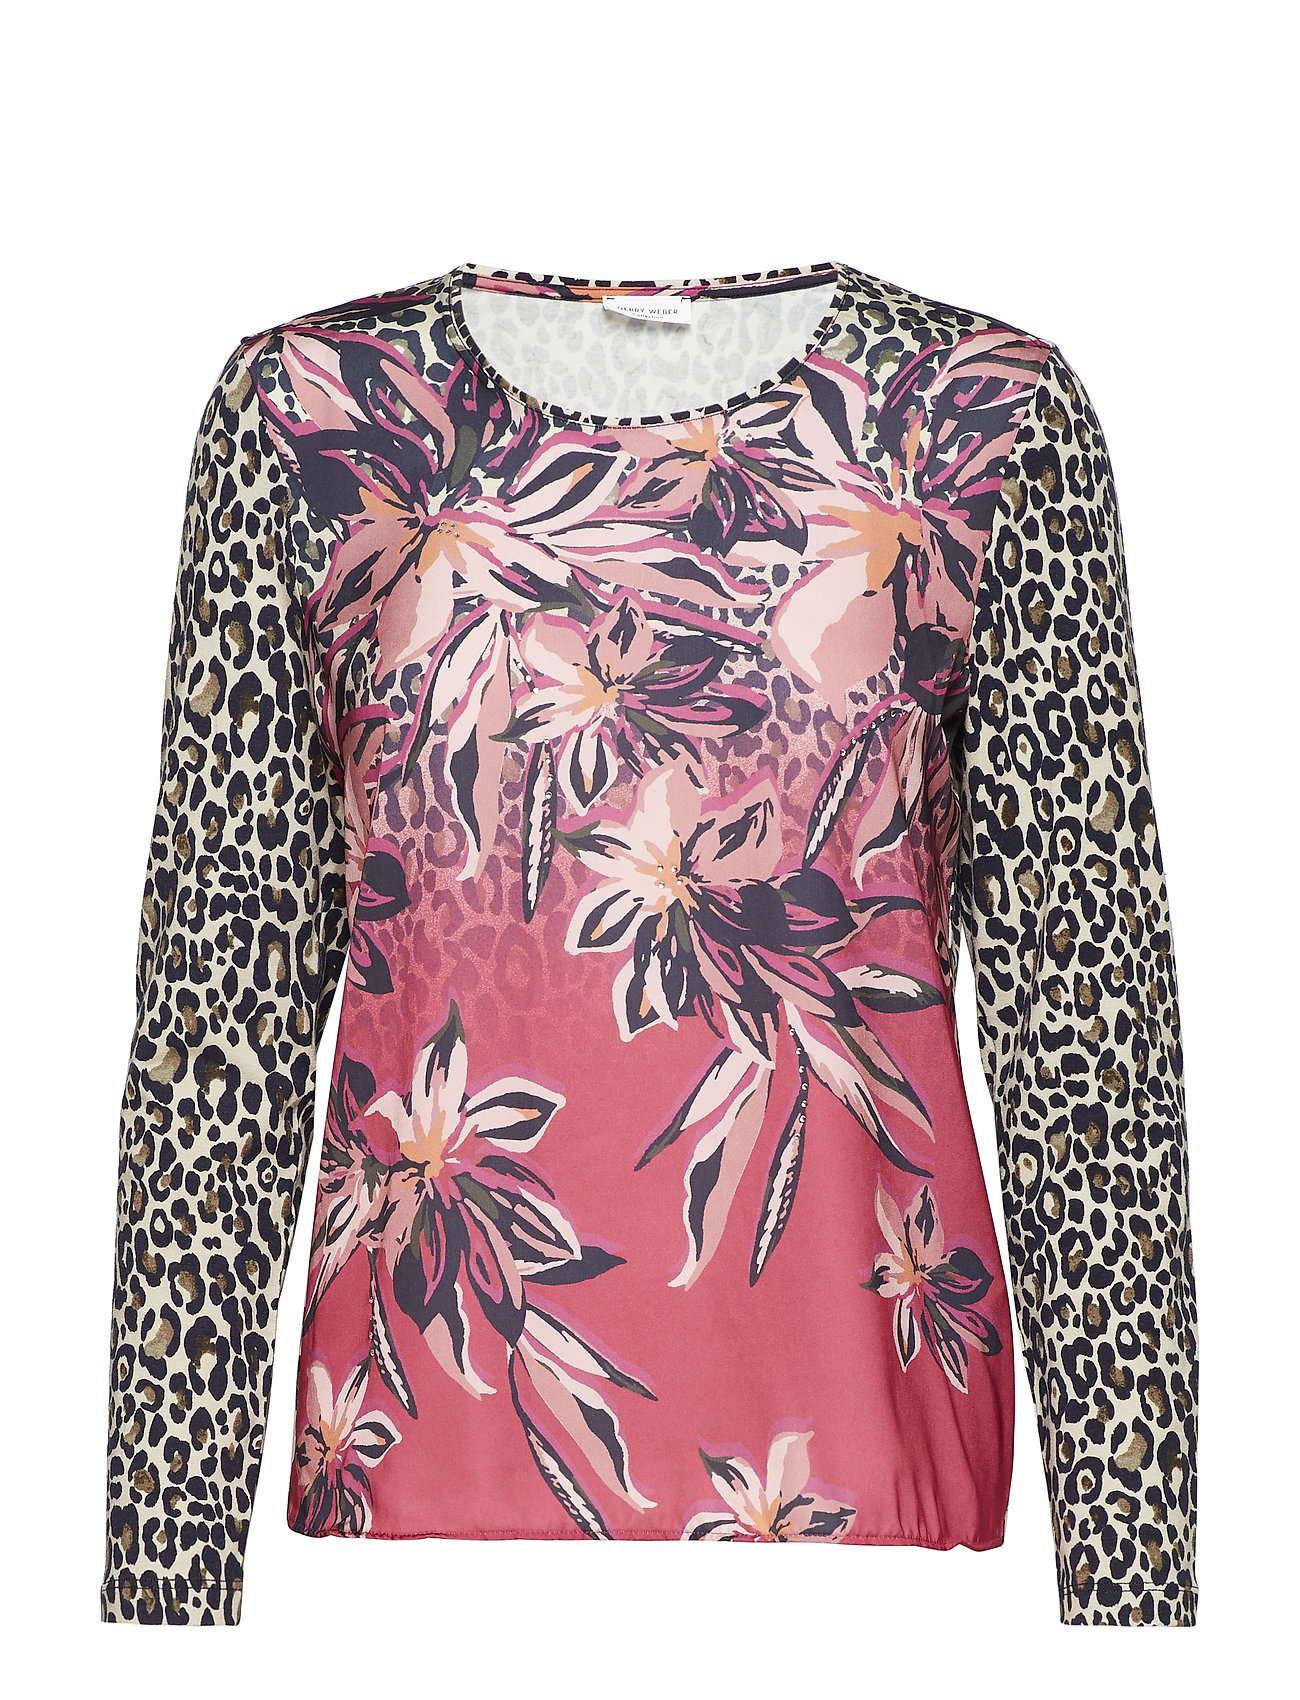 Gerry Weber T-SHIRT LONG-SLEEVE - ASALEA/ WILD ROSE/ INK